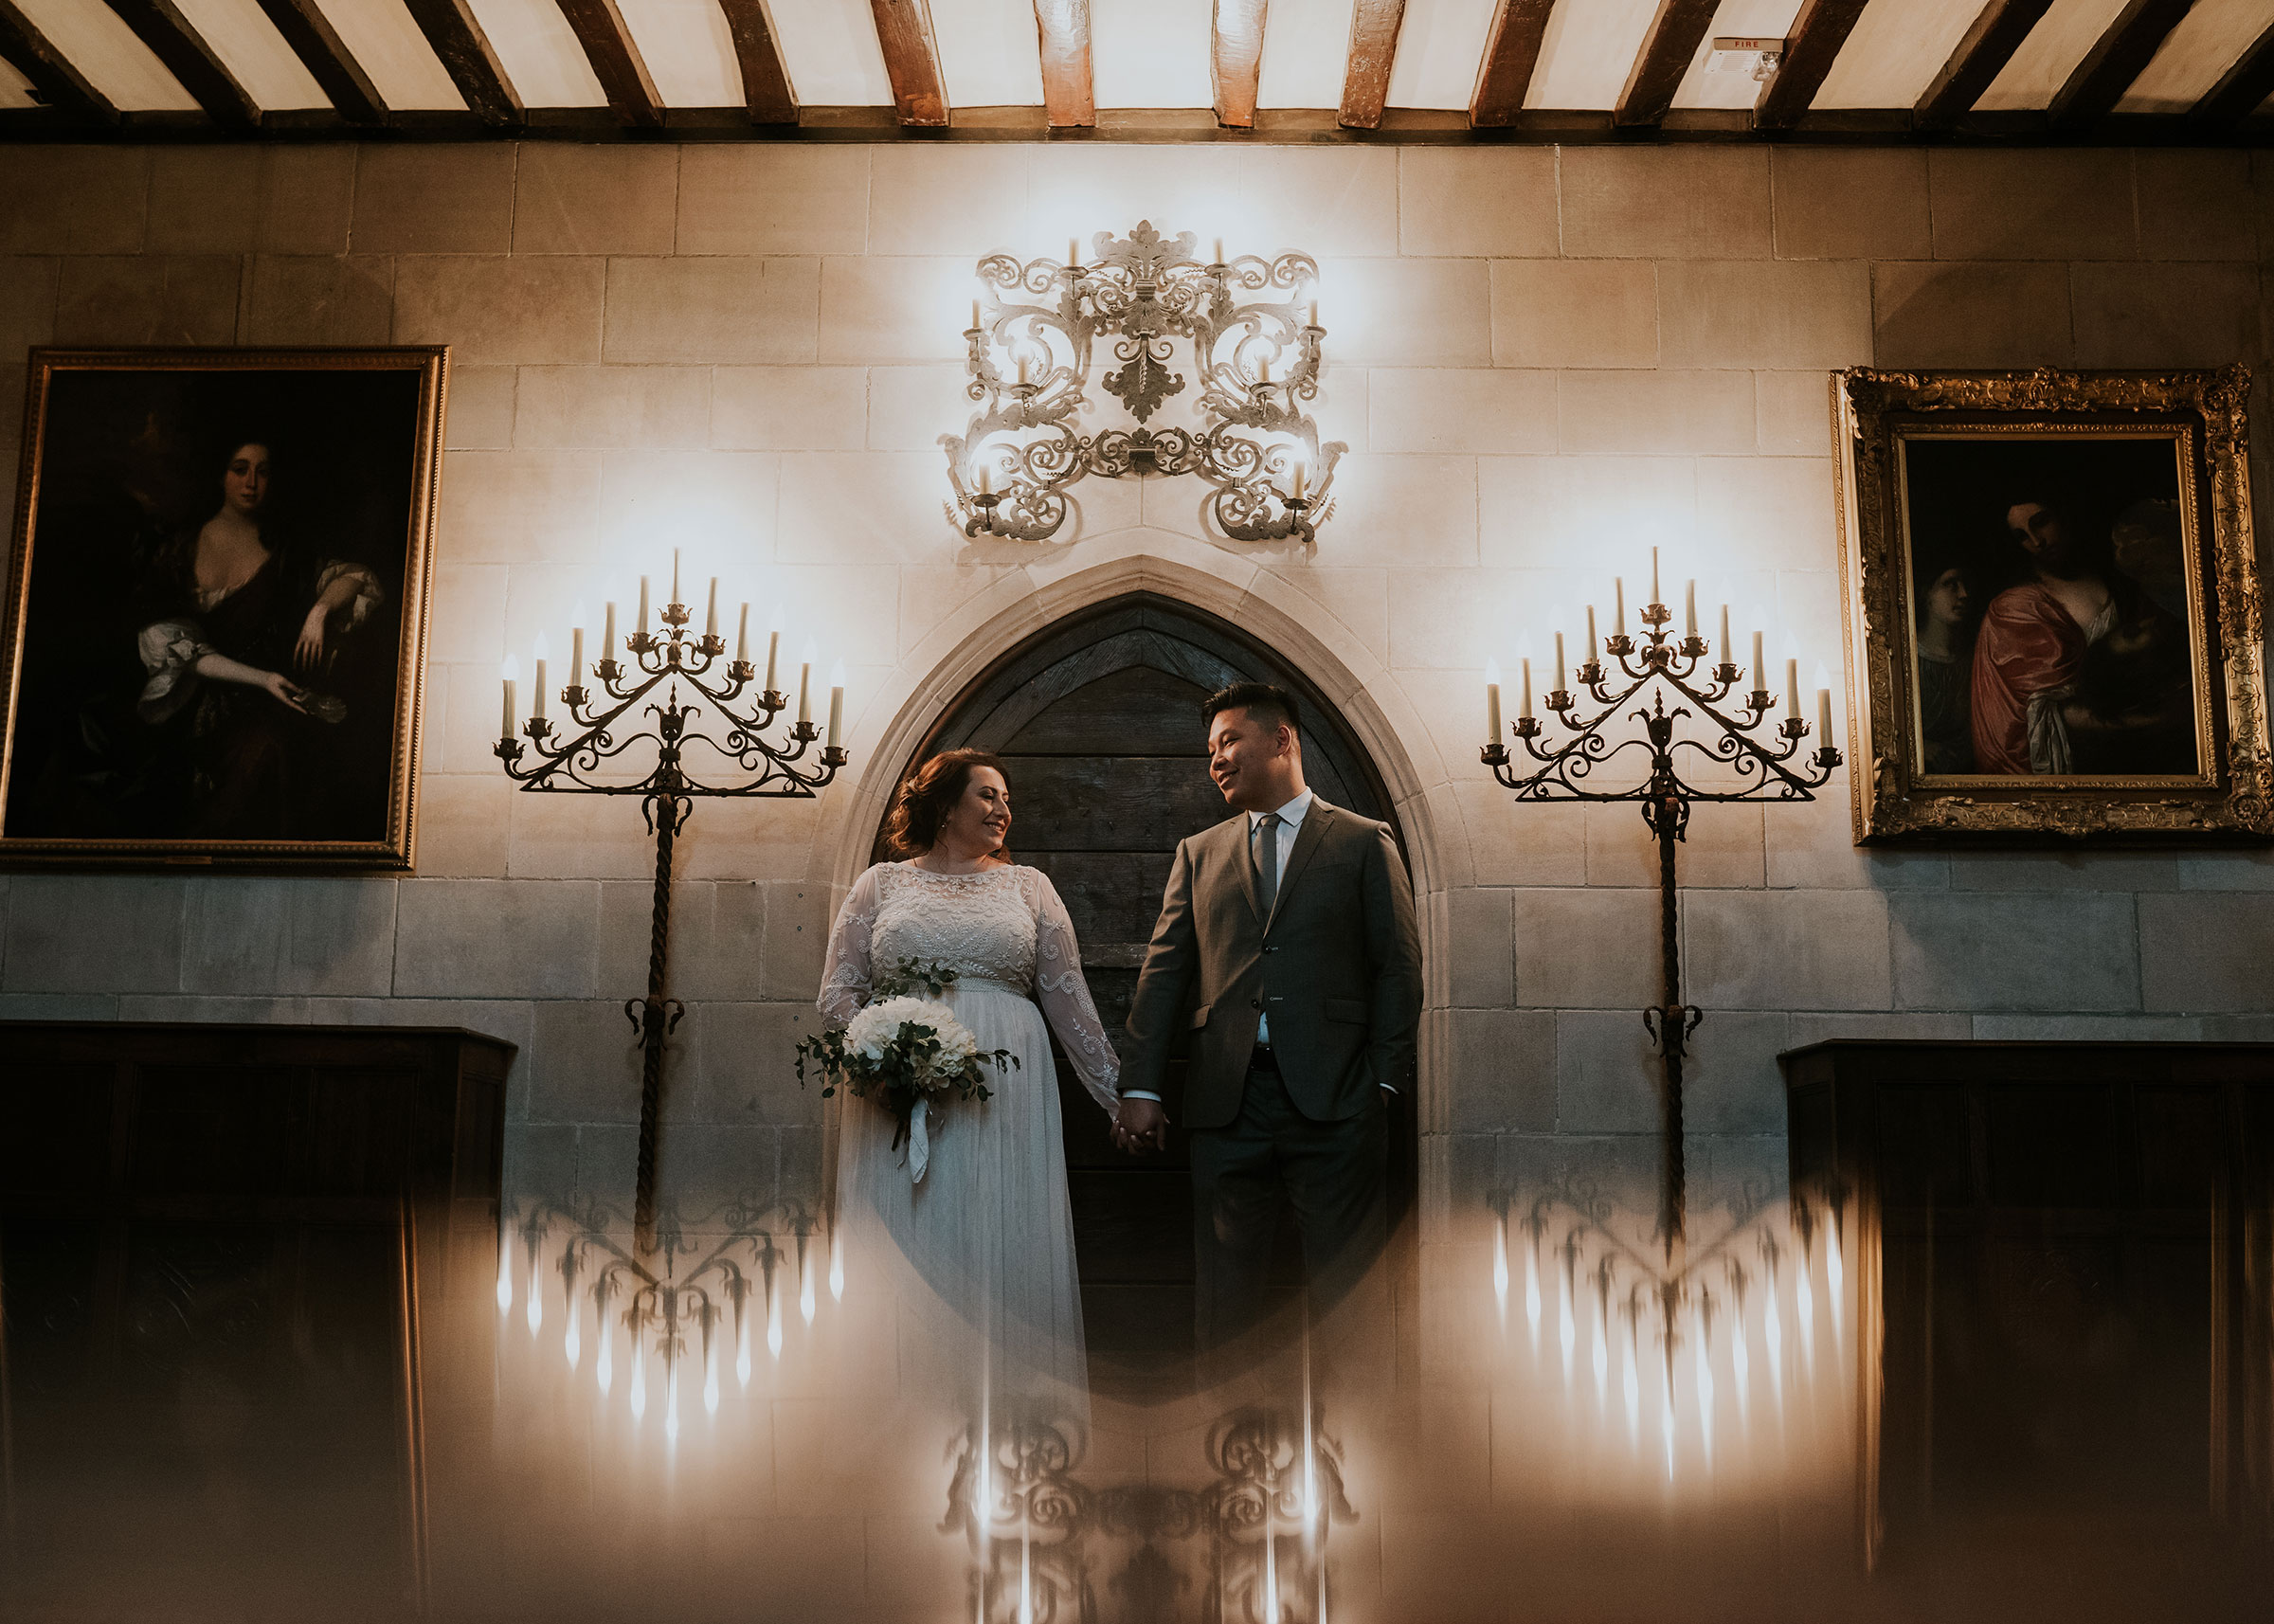 bride-groom-holding-hands-standing-in-front-of-arched-doors-and-candelabras-wedding-salisbury-house-desmoines-iowa-raelyn-ramey-photography.jpg